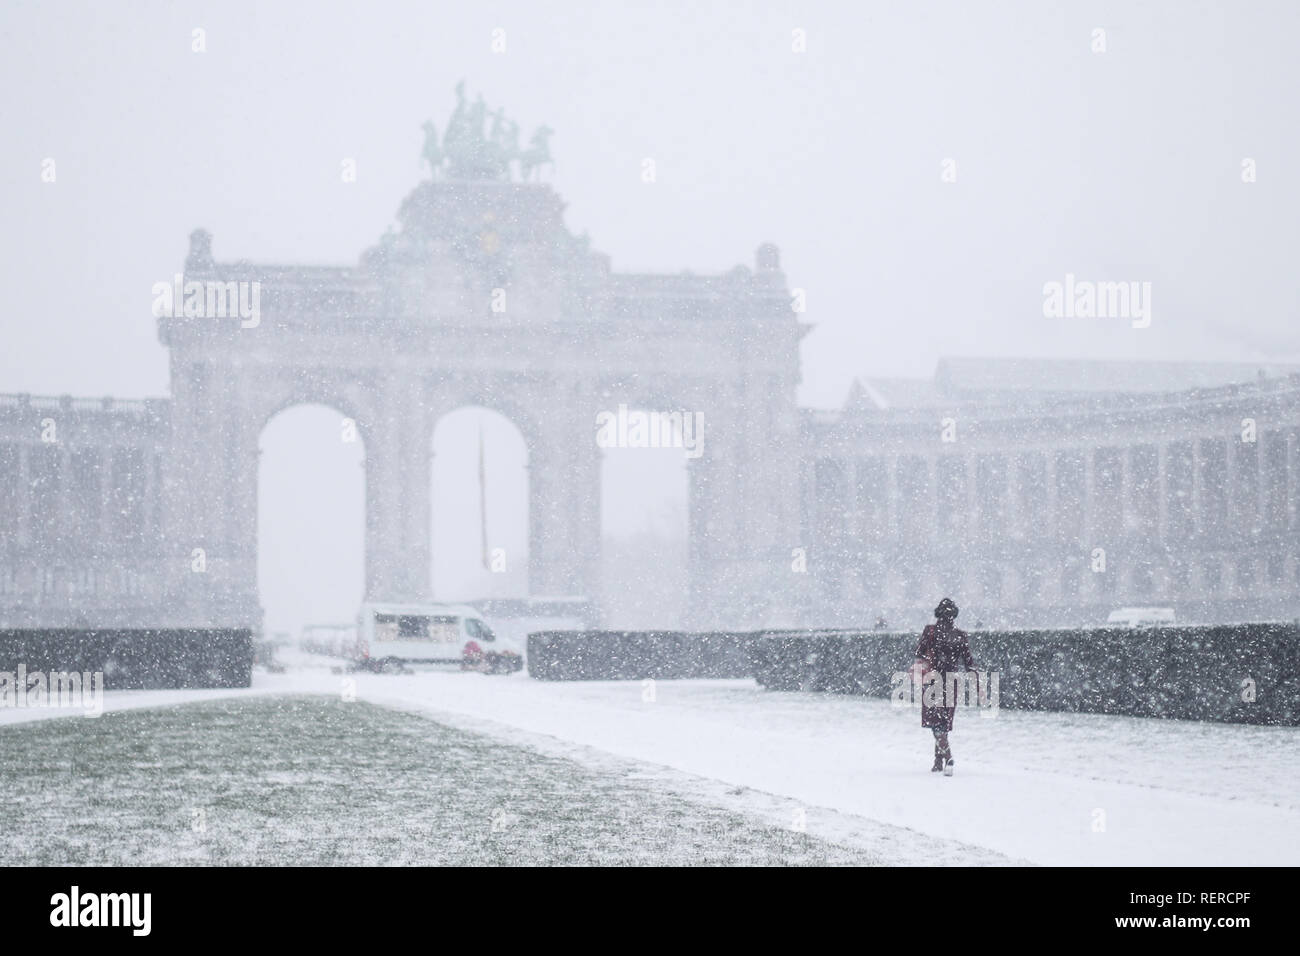 Beijing, Belgium. 22nd Jan, 2019. A woman walks at the Park of the Fiftieth Anniversary in Brussels, Belgium, Jan. 22, 2019. Brussels witnessed the first snow in 2019 on Tuesday. Credit: Zheng Huansong/Xinhua/Alamy Live News - Stock Image